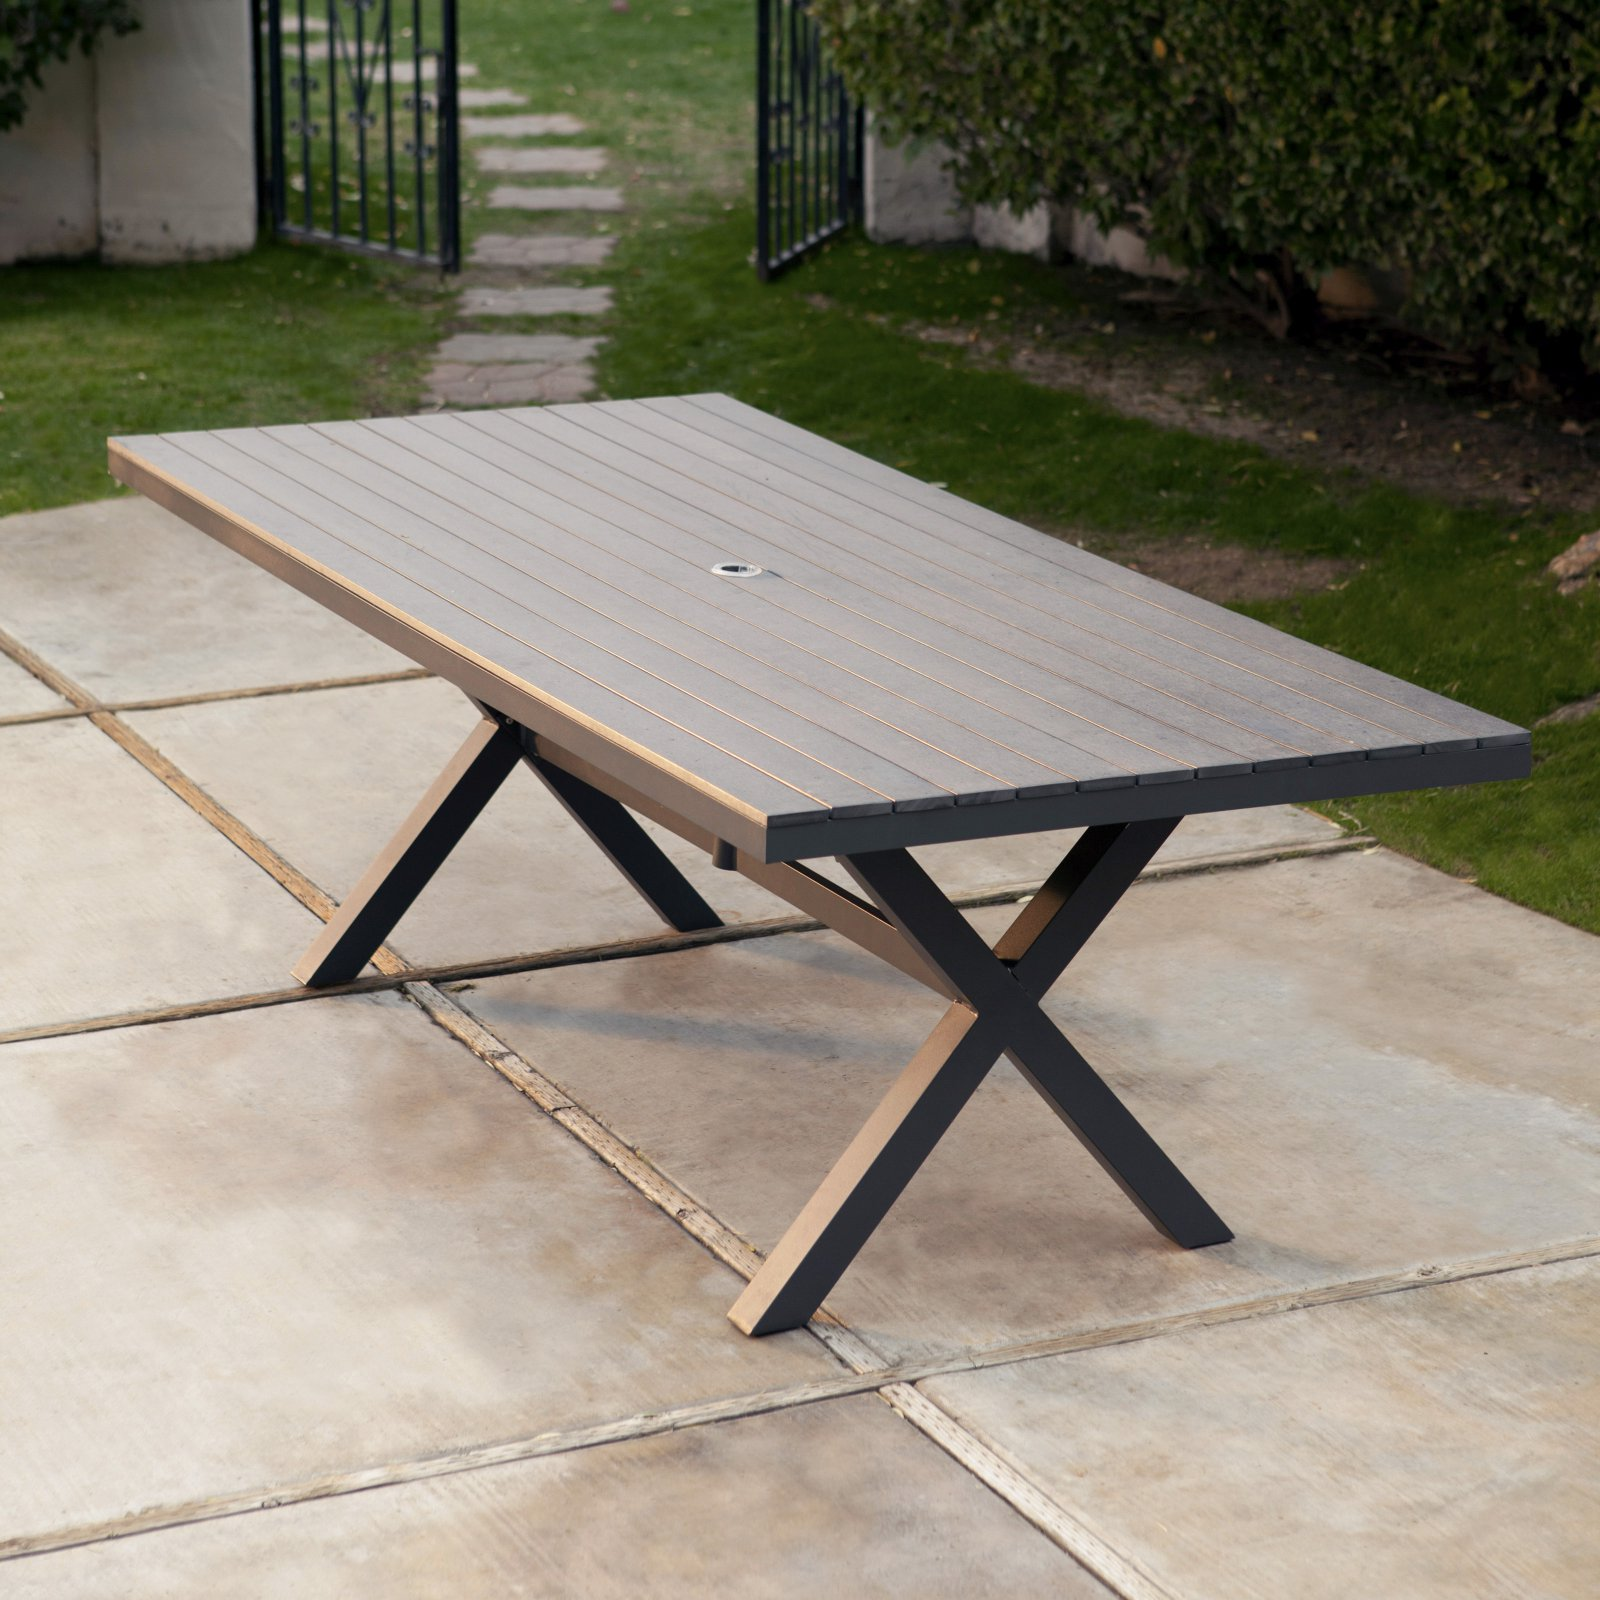 Belham Living Bella All Weather Resin Patio Dining Table   Walmart.com